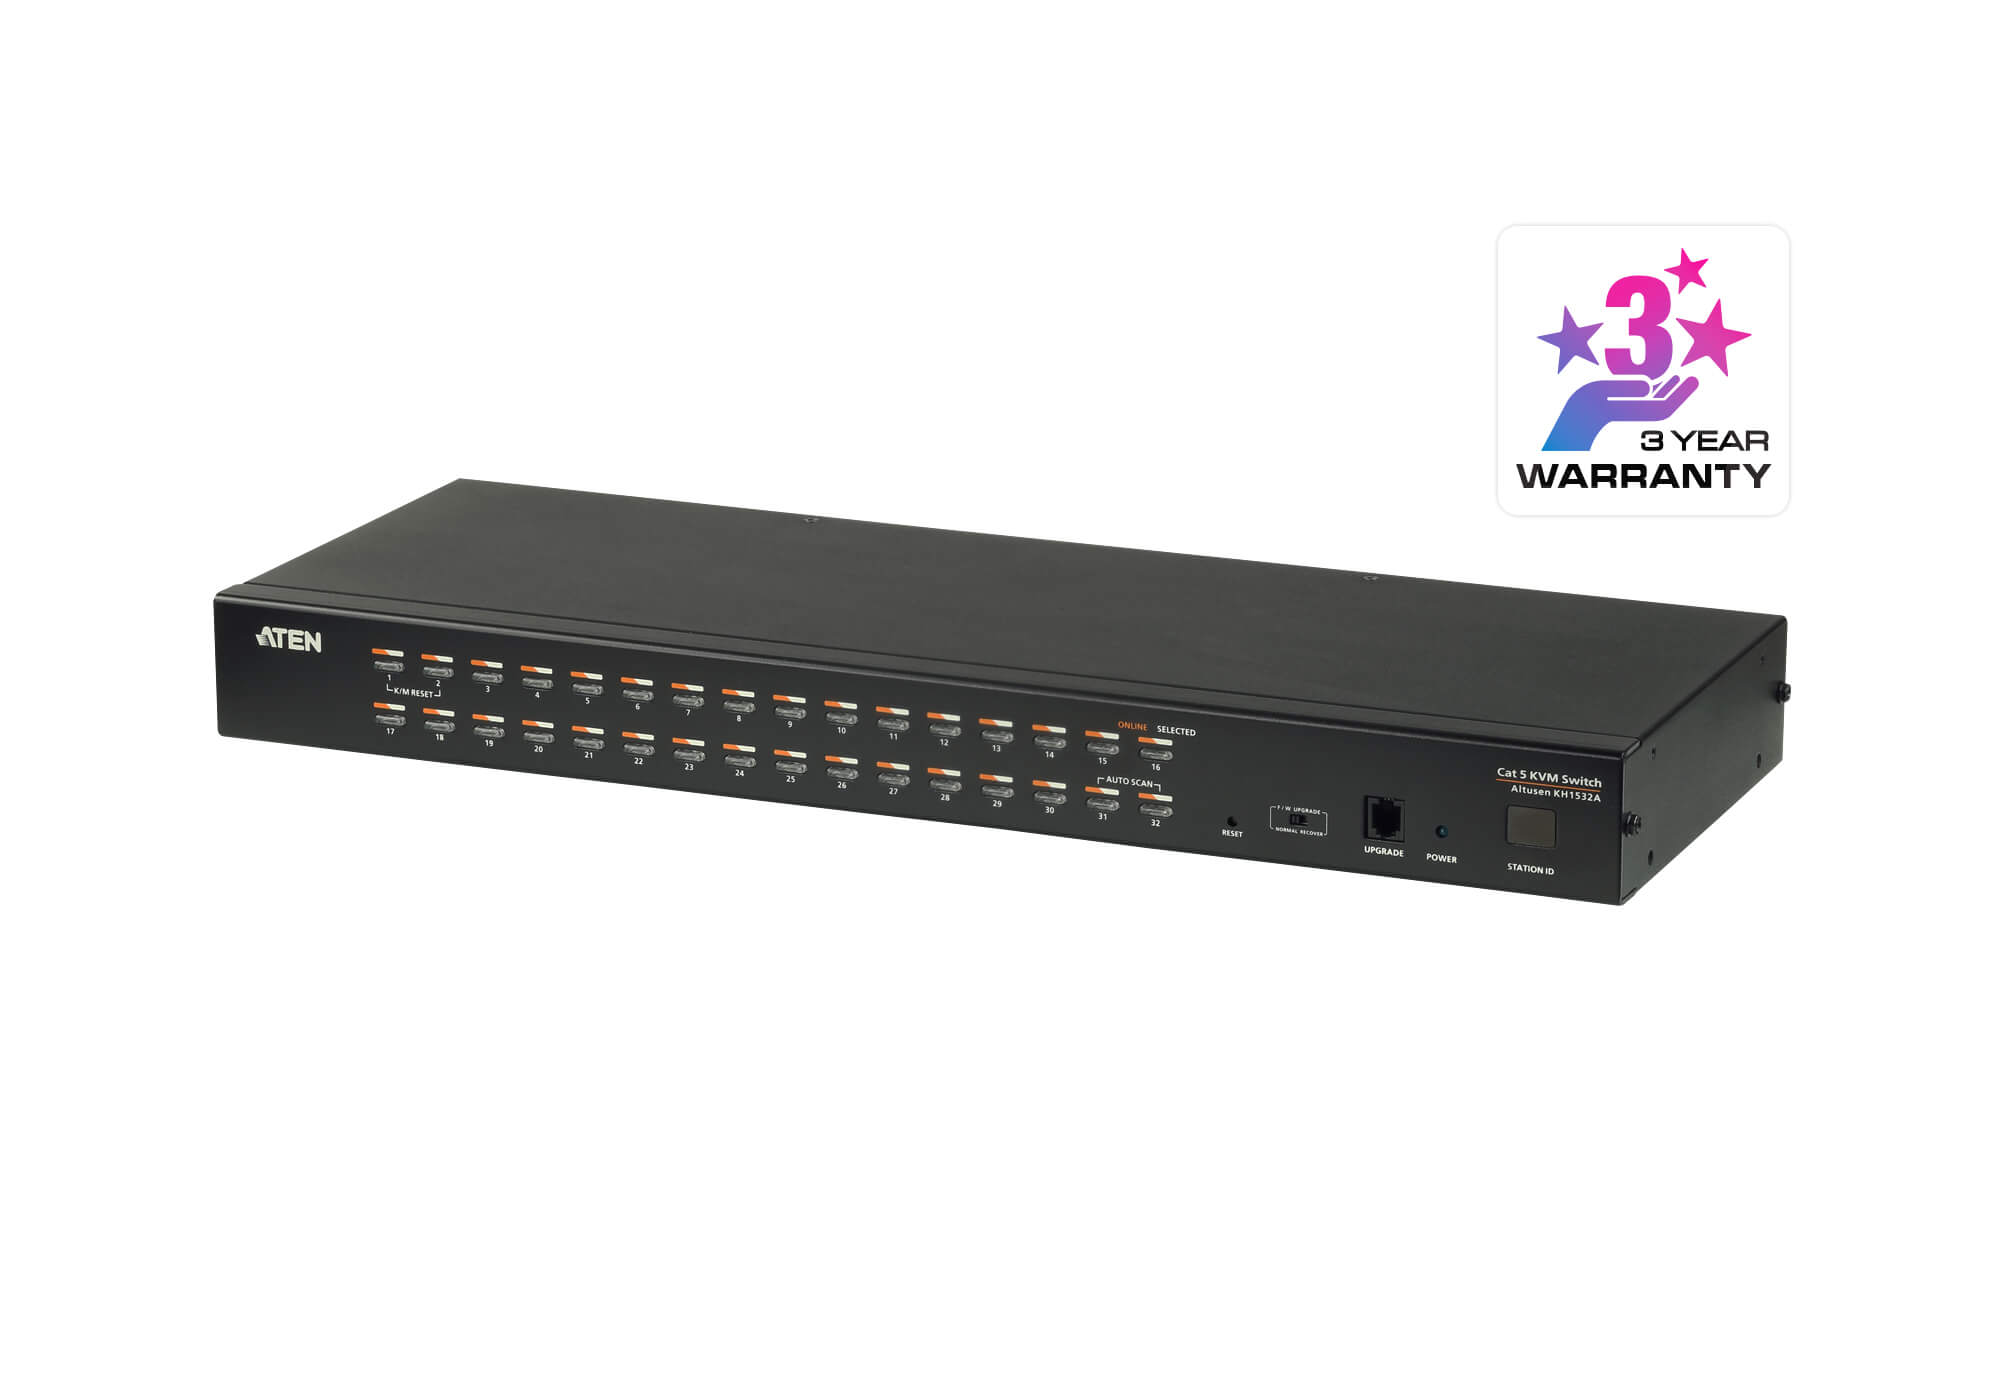 32-Port Multi-Interface (DisplayPort, HDMI, DVI, VGA) Cat 5 KVM Switch